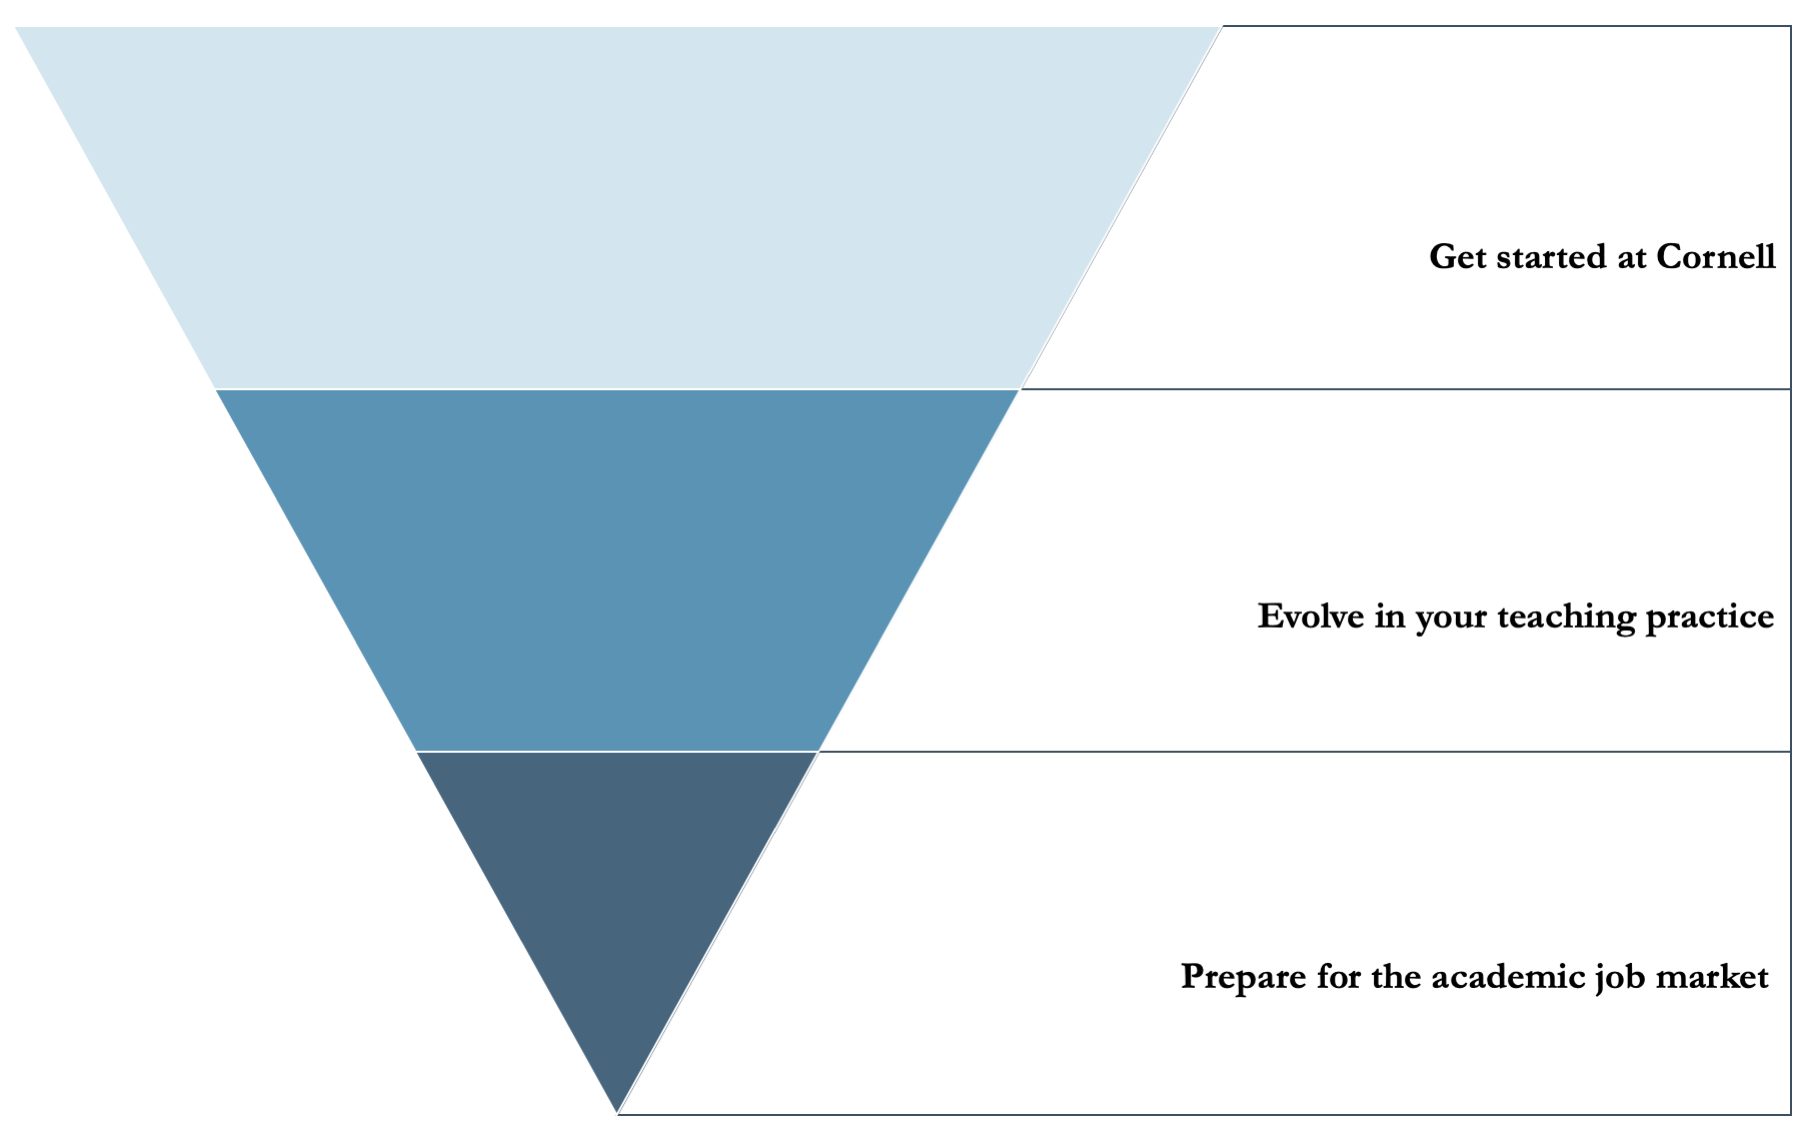 A pyramid with three stages: getting ready for the academic job market; developing your teaching practice; getting started at Cornell